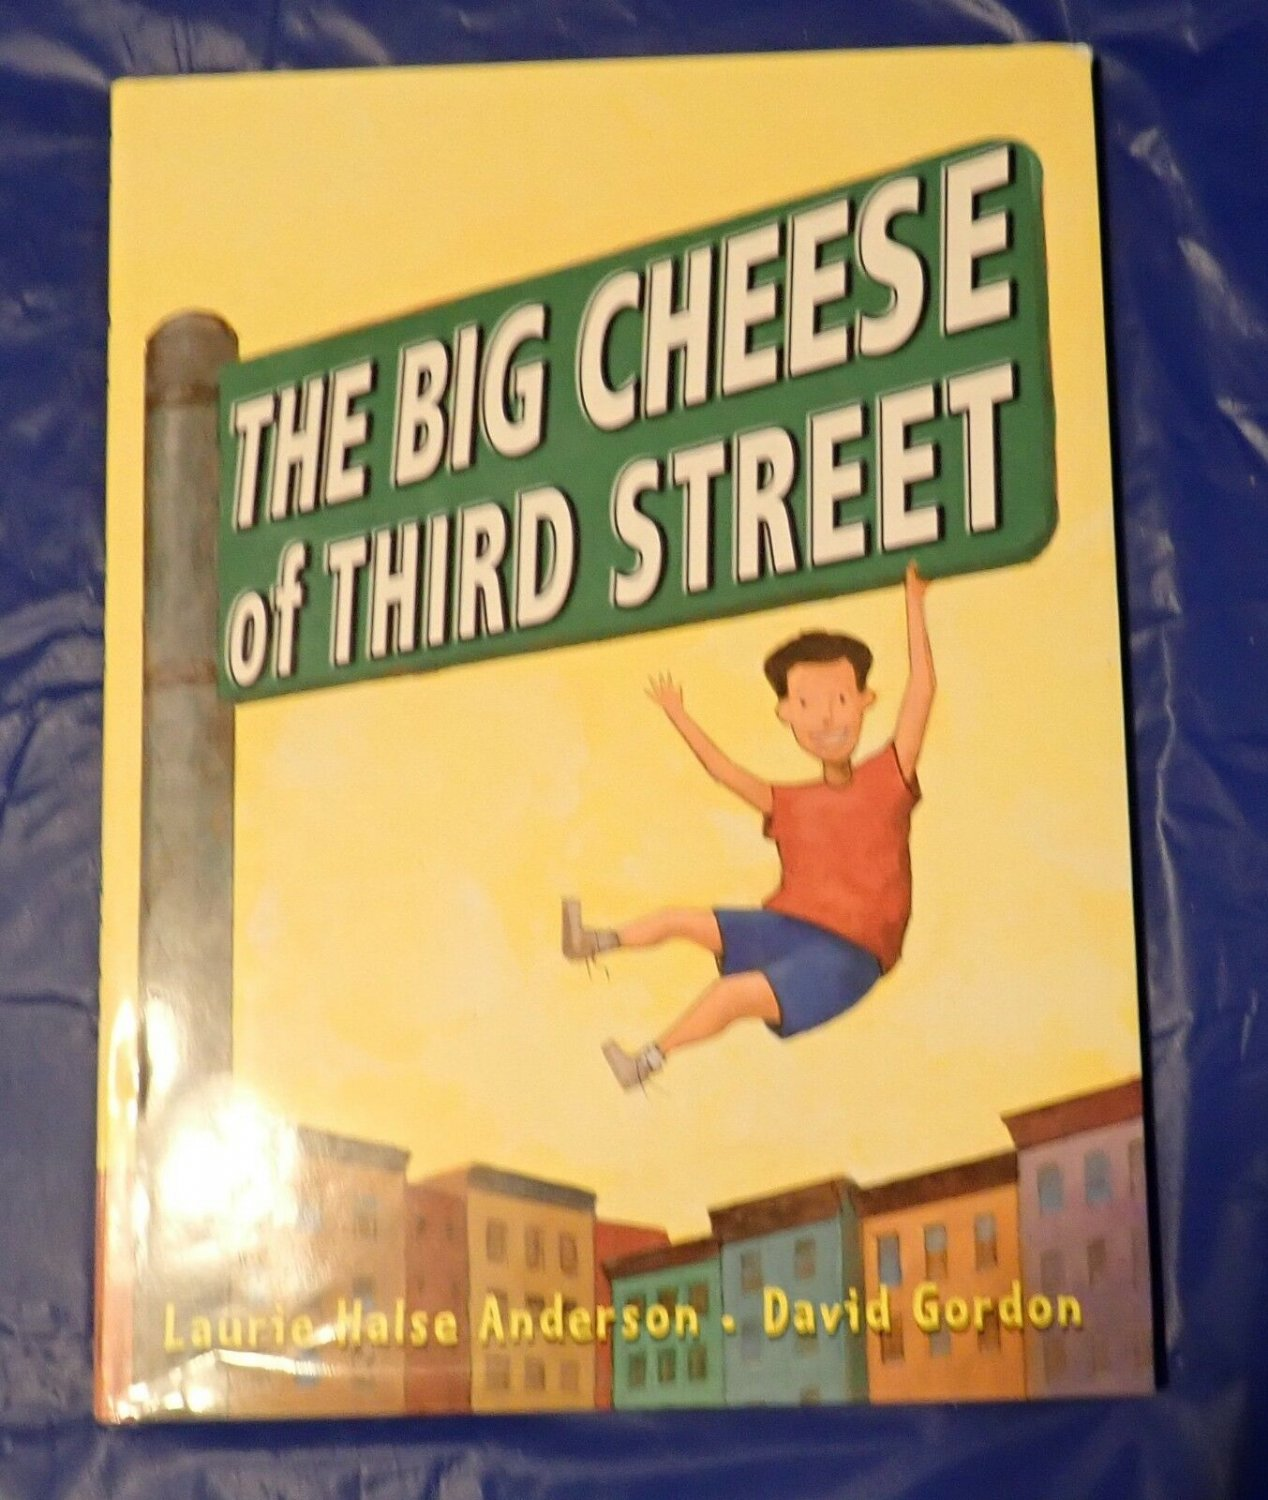 The Big Cheese of Third Street by Laurie Halse Anderson (2002, Hardcover)